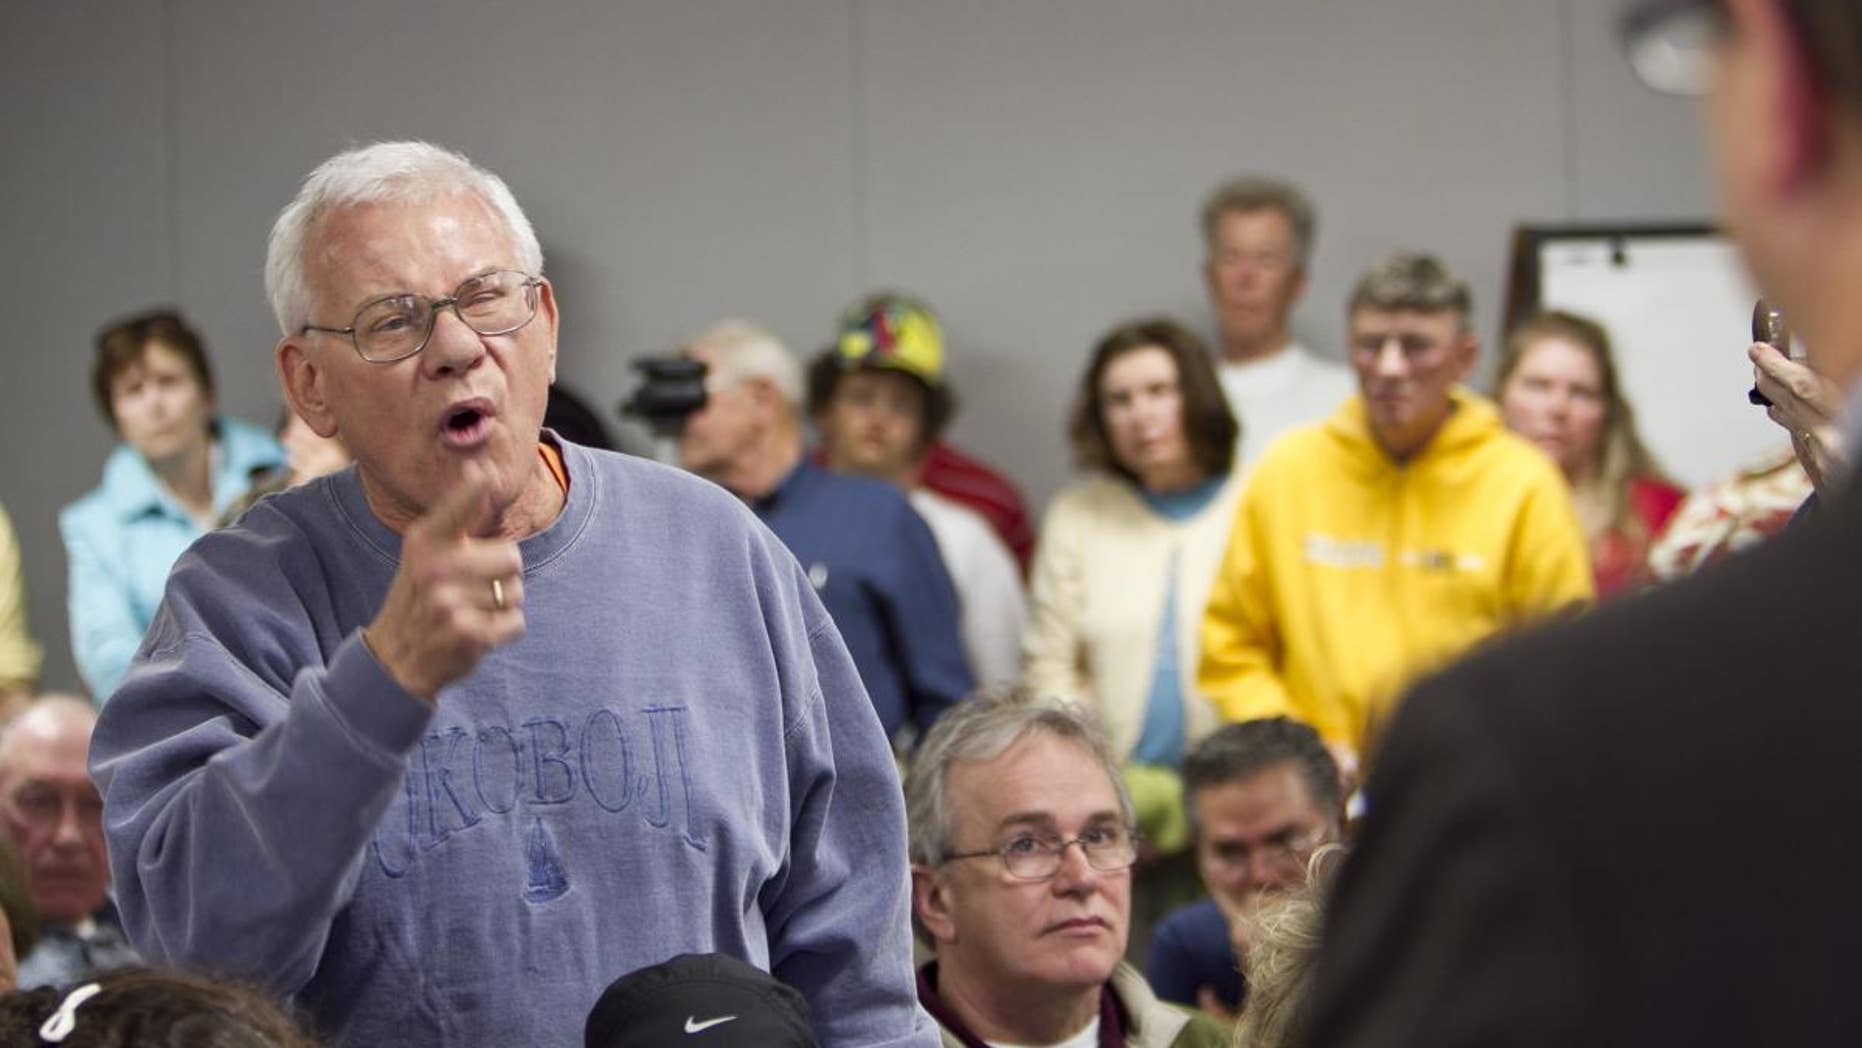 William Kouth of Omaha addresses Rep. Lee Terry R-Neb., during a town hall meeting held to discuss the Republican party's plan to privatize Medicare, in Omaha, Neb., Thursday, April 28, 2011. (AP Photo/Nati Harnik)